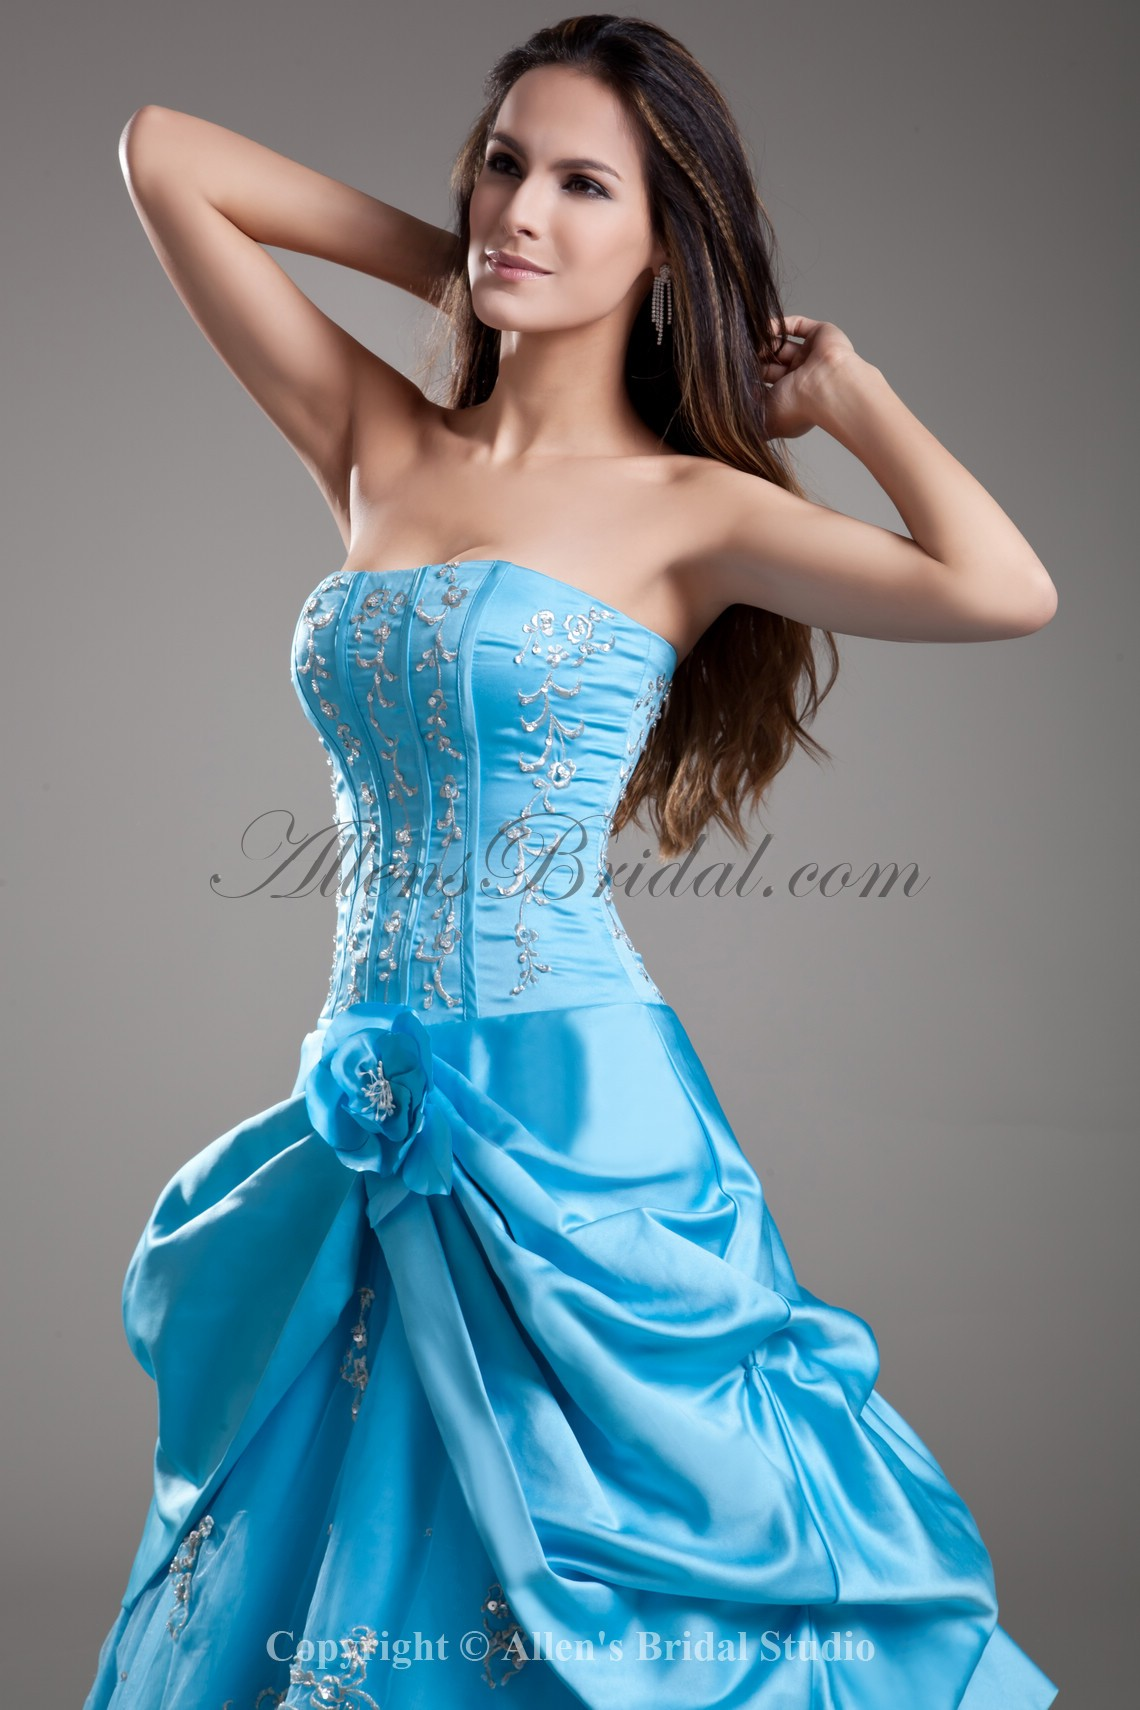 /686-5494/satin-sweetheart-floor-length-ball-gown-embroidered-prom-dress.jpg